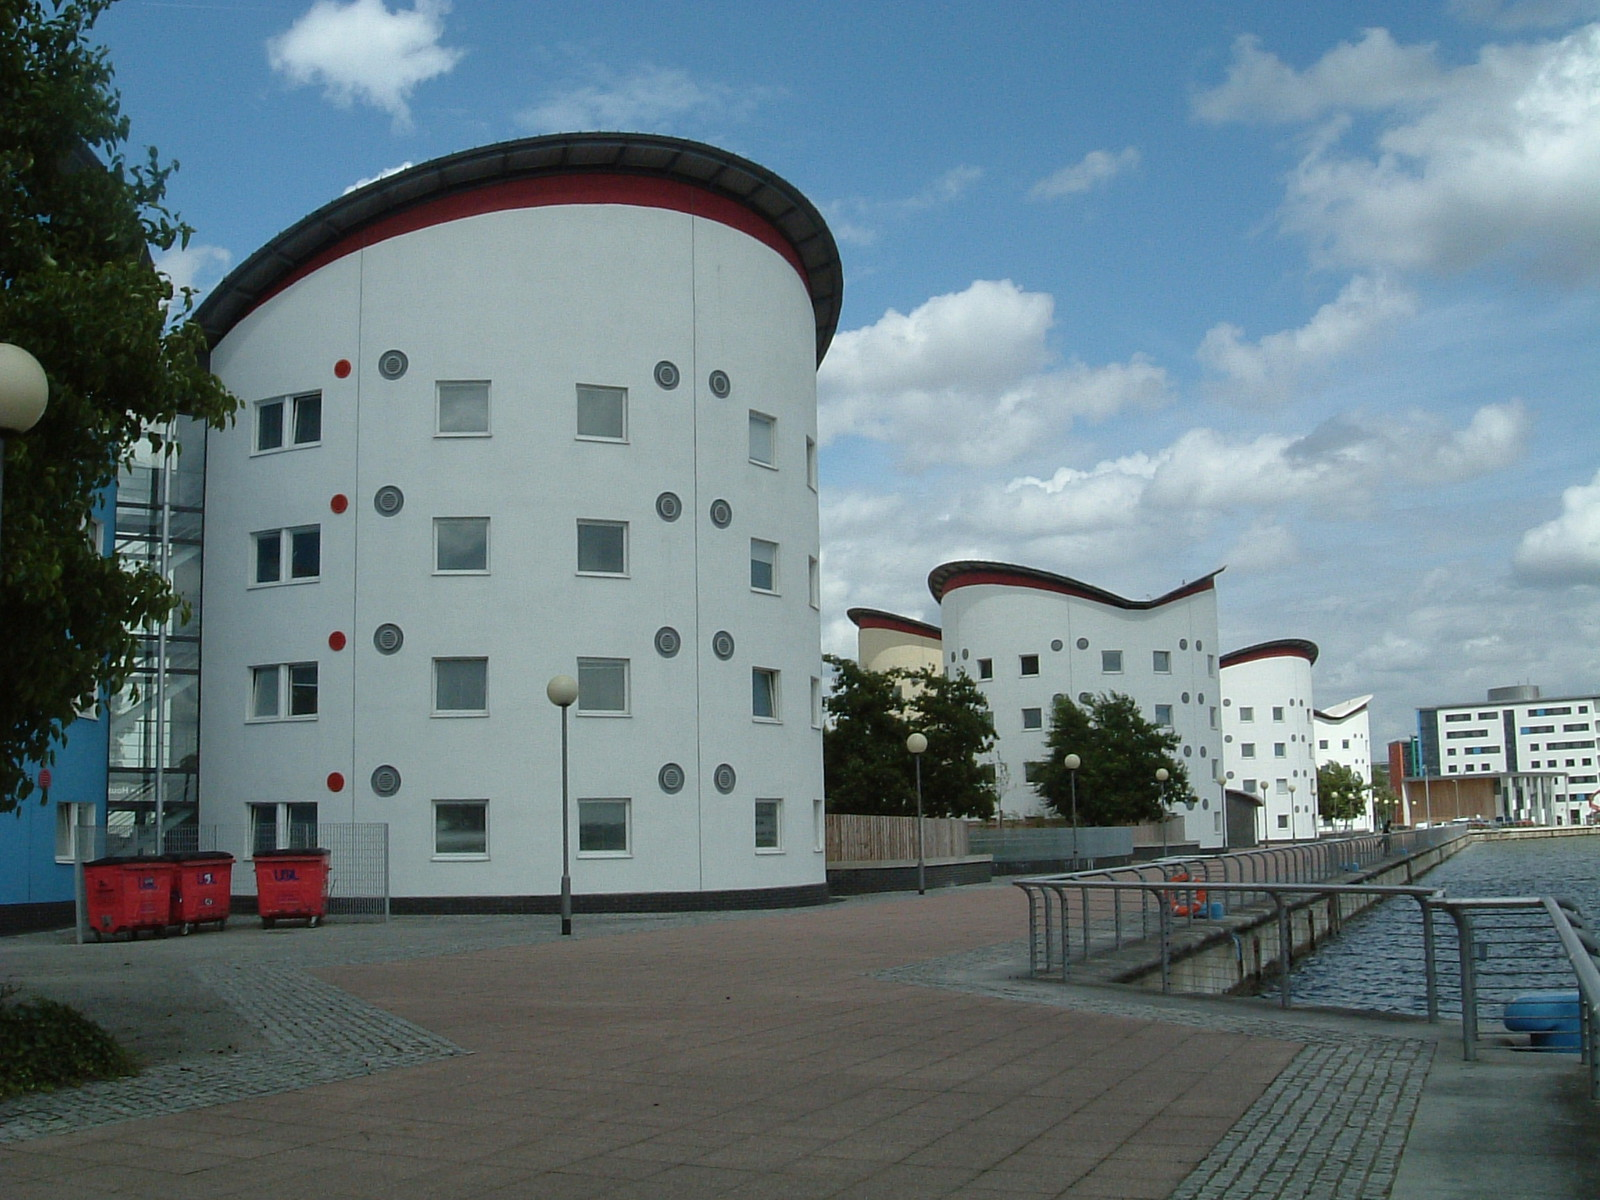 The Docklands Campus of the University of East London